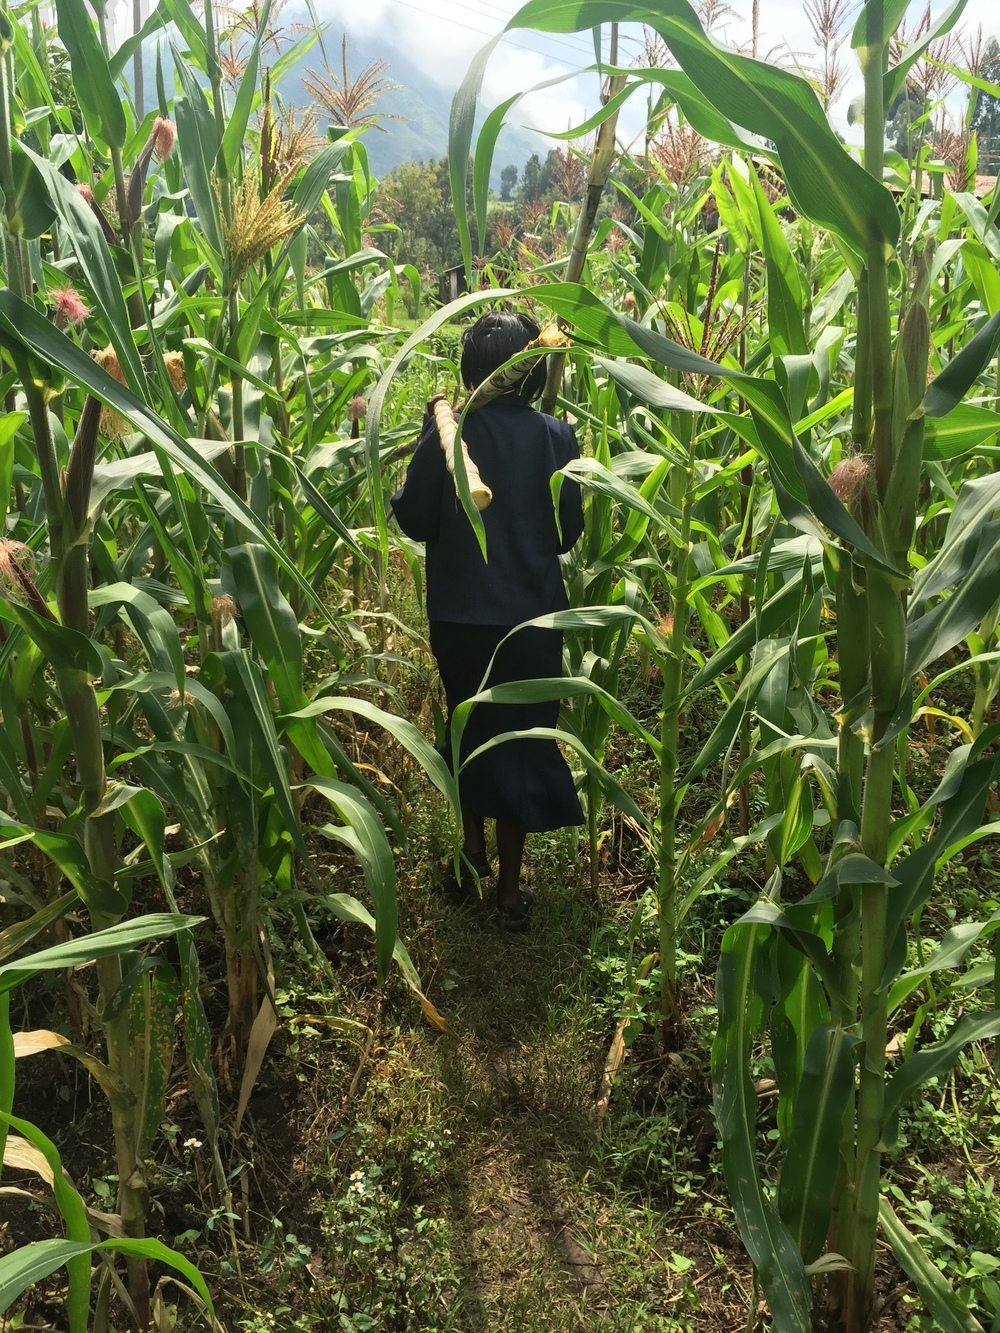 Helen walking back to the outreach with the 3 sugarcane stalks